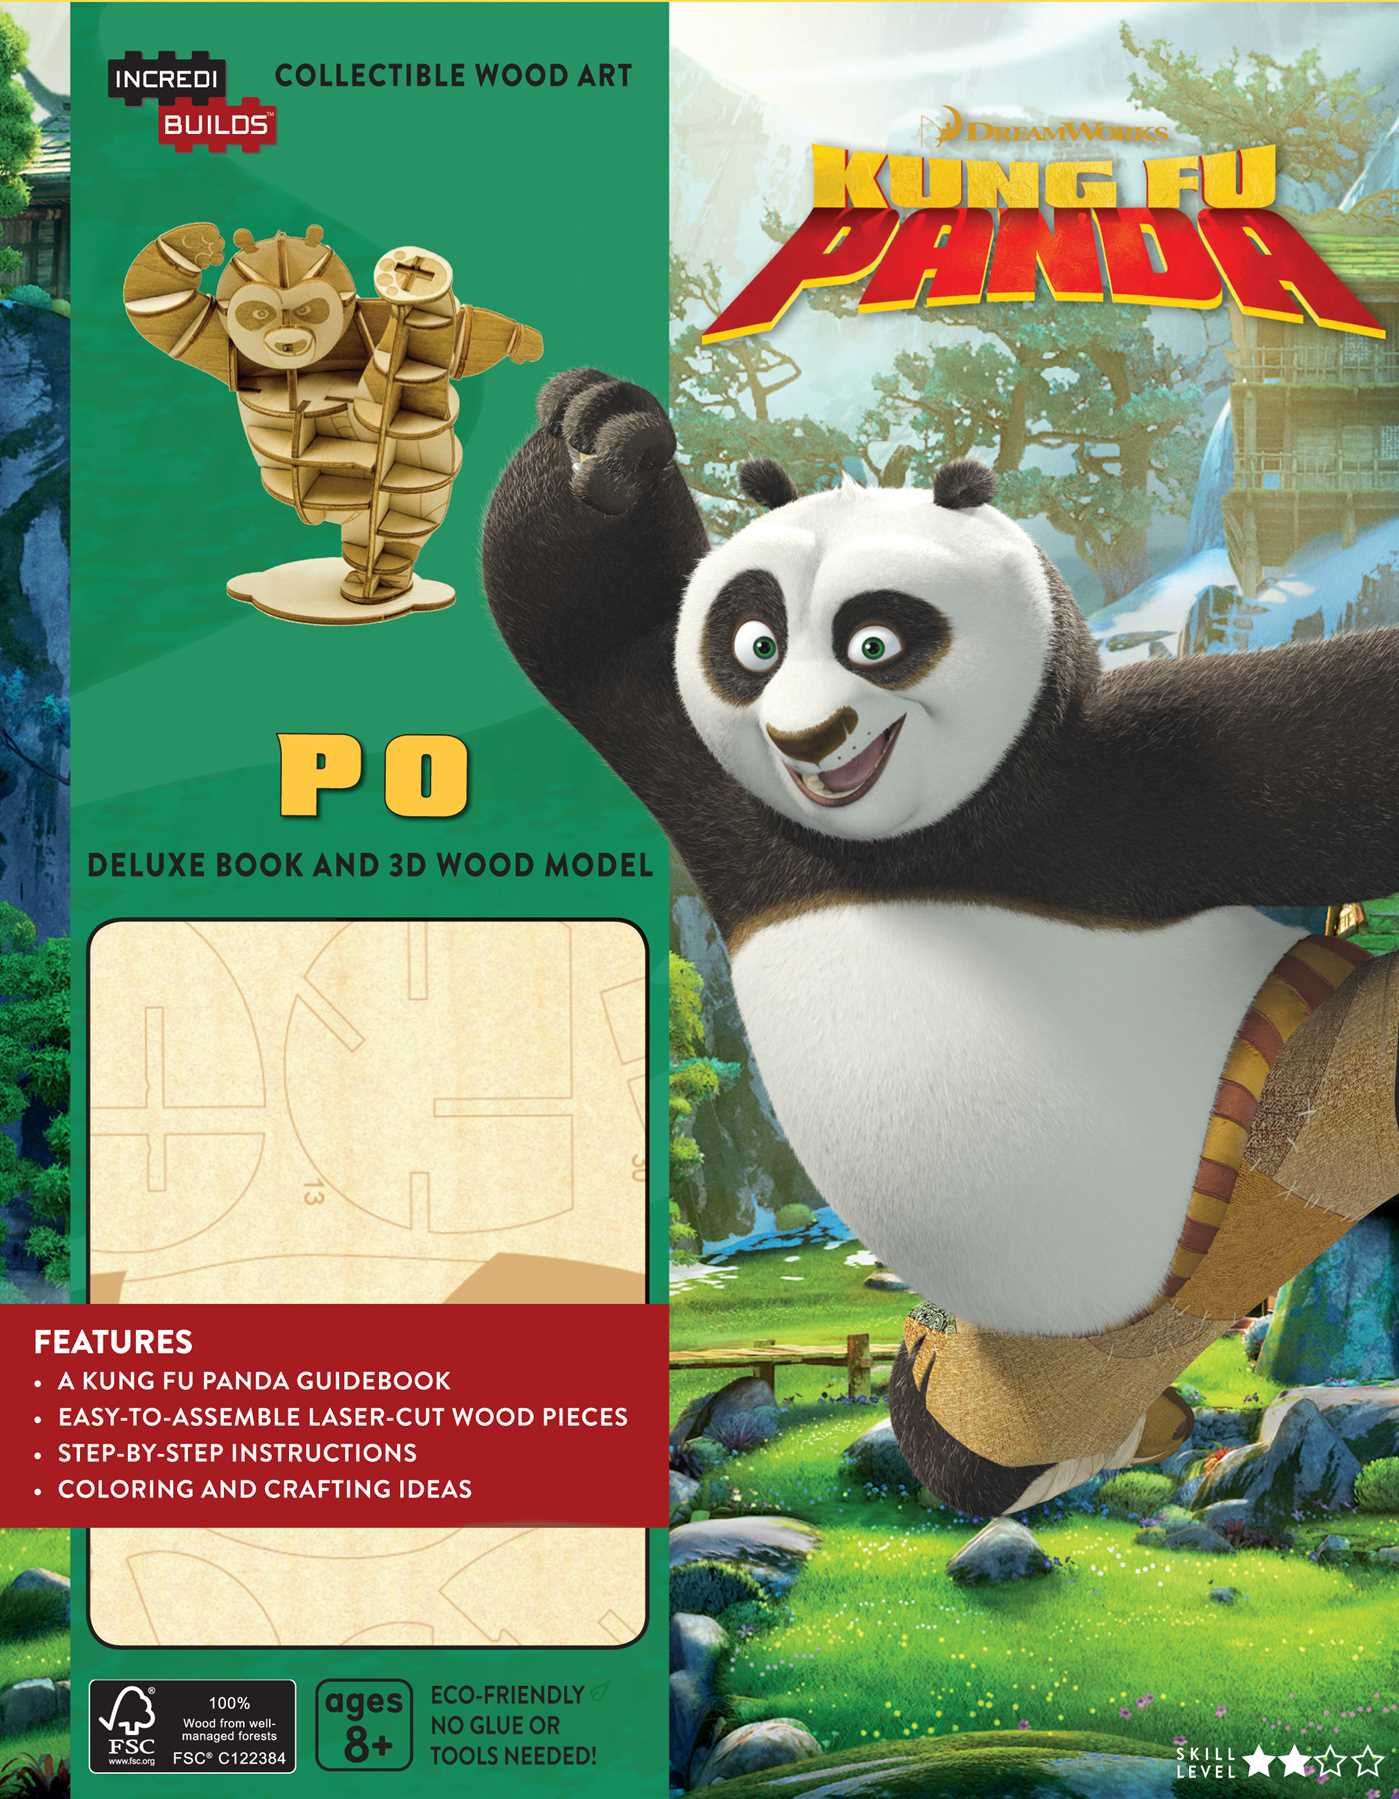 Incredibuilds dreamworks kung fu panda deluxe book and model set 9781682980569 hr